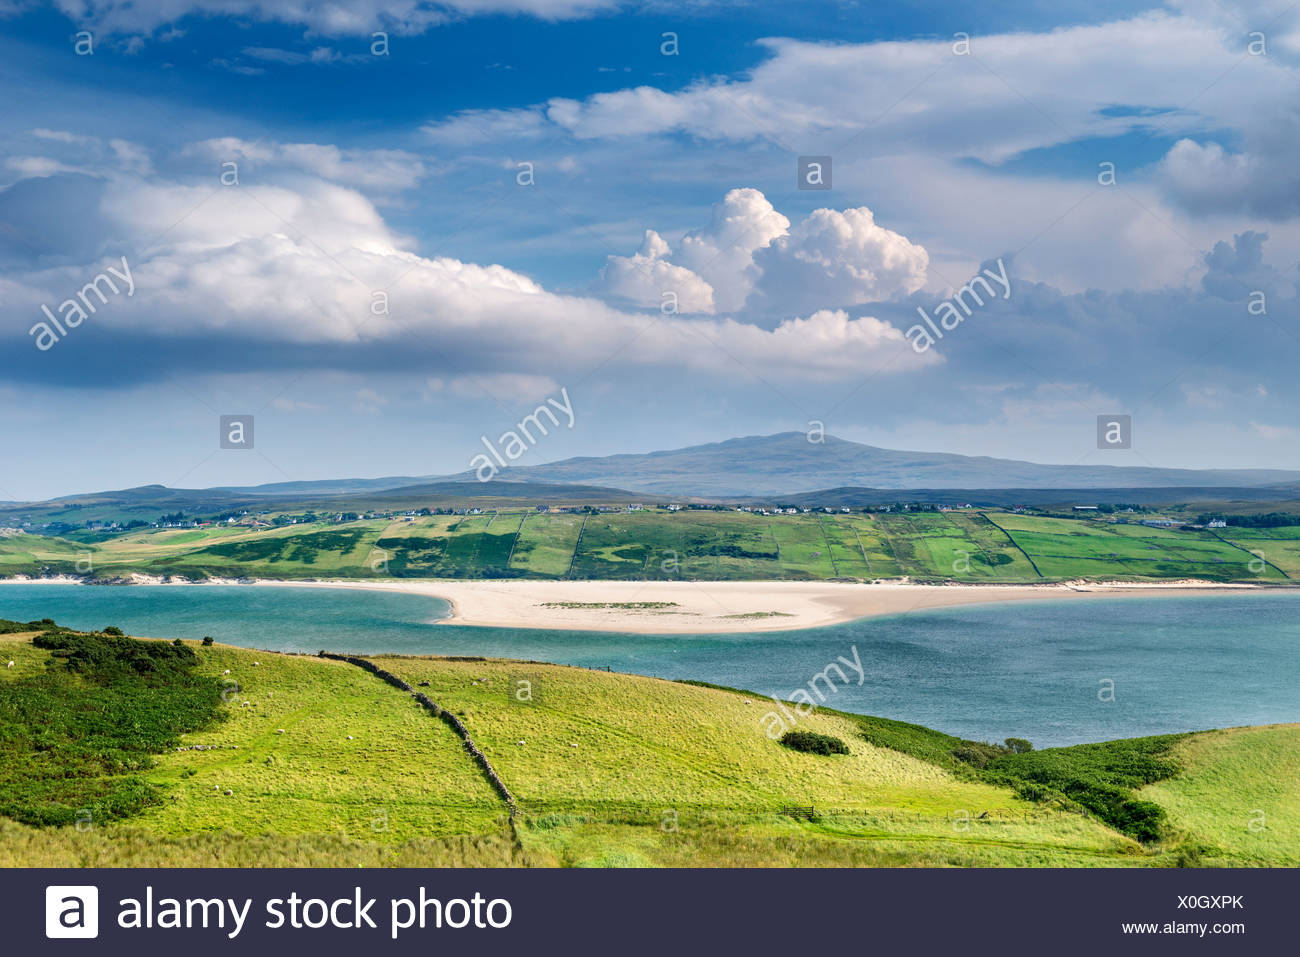 Sparsely populated hills at Kyle of Tongue in the Northern Highlands, Sutherland, Scotland, Great Britain, Europe - Stock Image